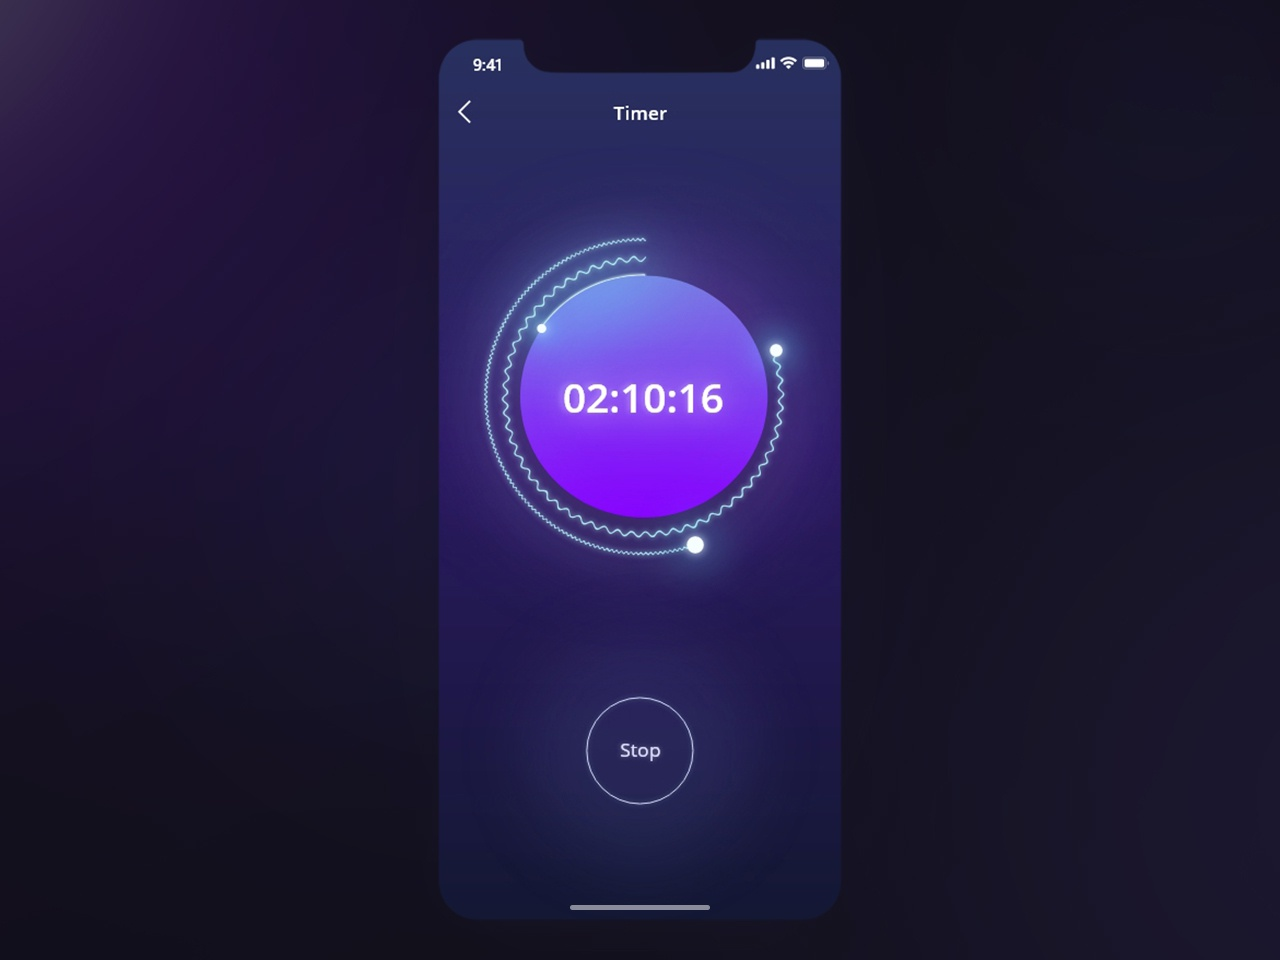 Daily UI - #014 Countdown Timer gradiant dailyui014 countdown timer blue purple 3d 2d vector ios color user interface app user experience art ui ux dribbble design dailyui